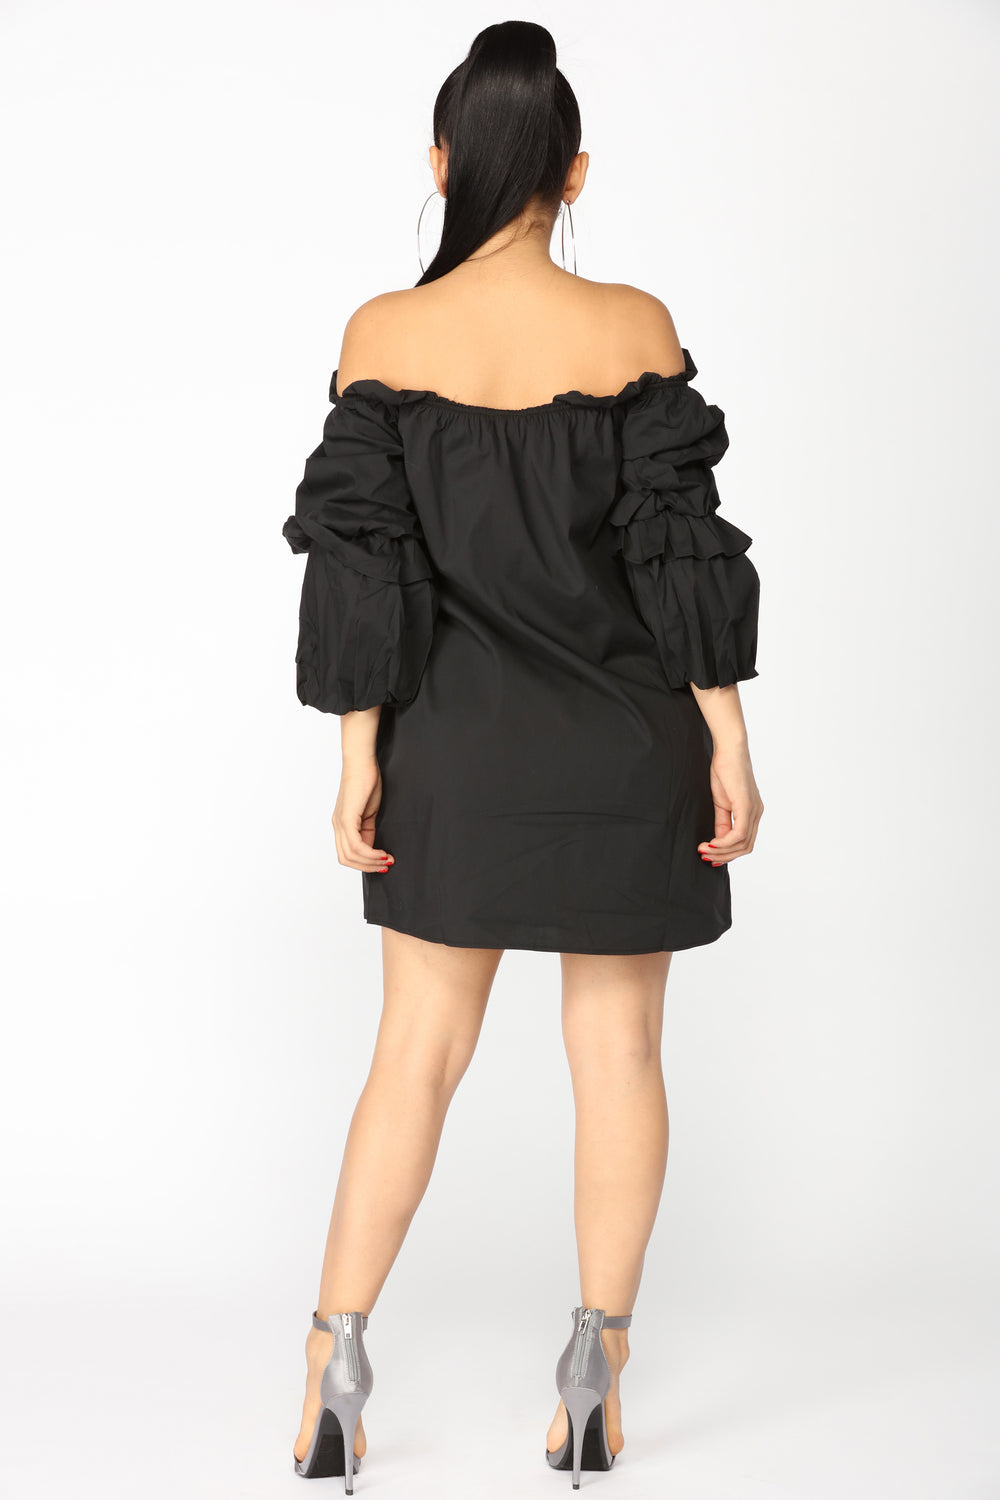 Huff And Puff Off Shoulder Dress - Black